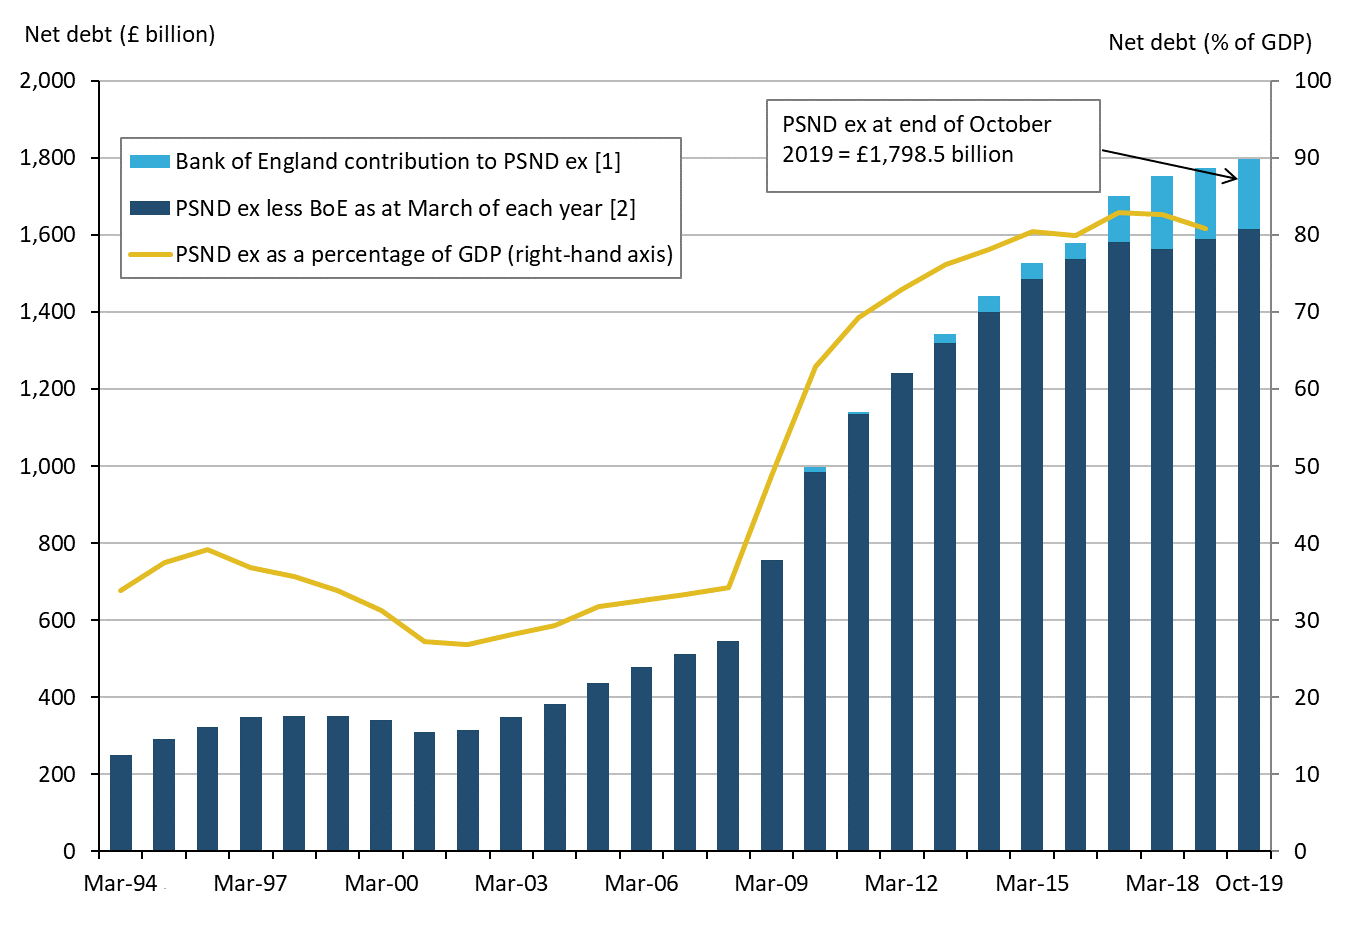 Public sector net debt excluding public sector banks at the end of October 2019 stood at just under £1.8 trillion (£1,798.5 billion).